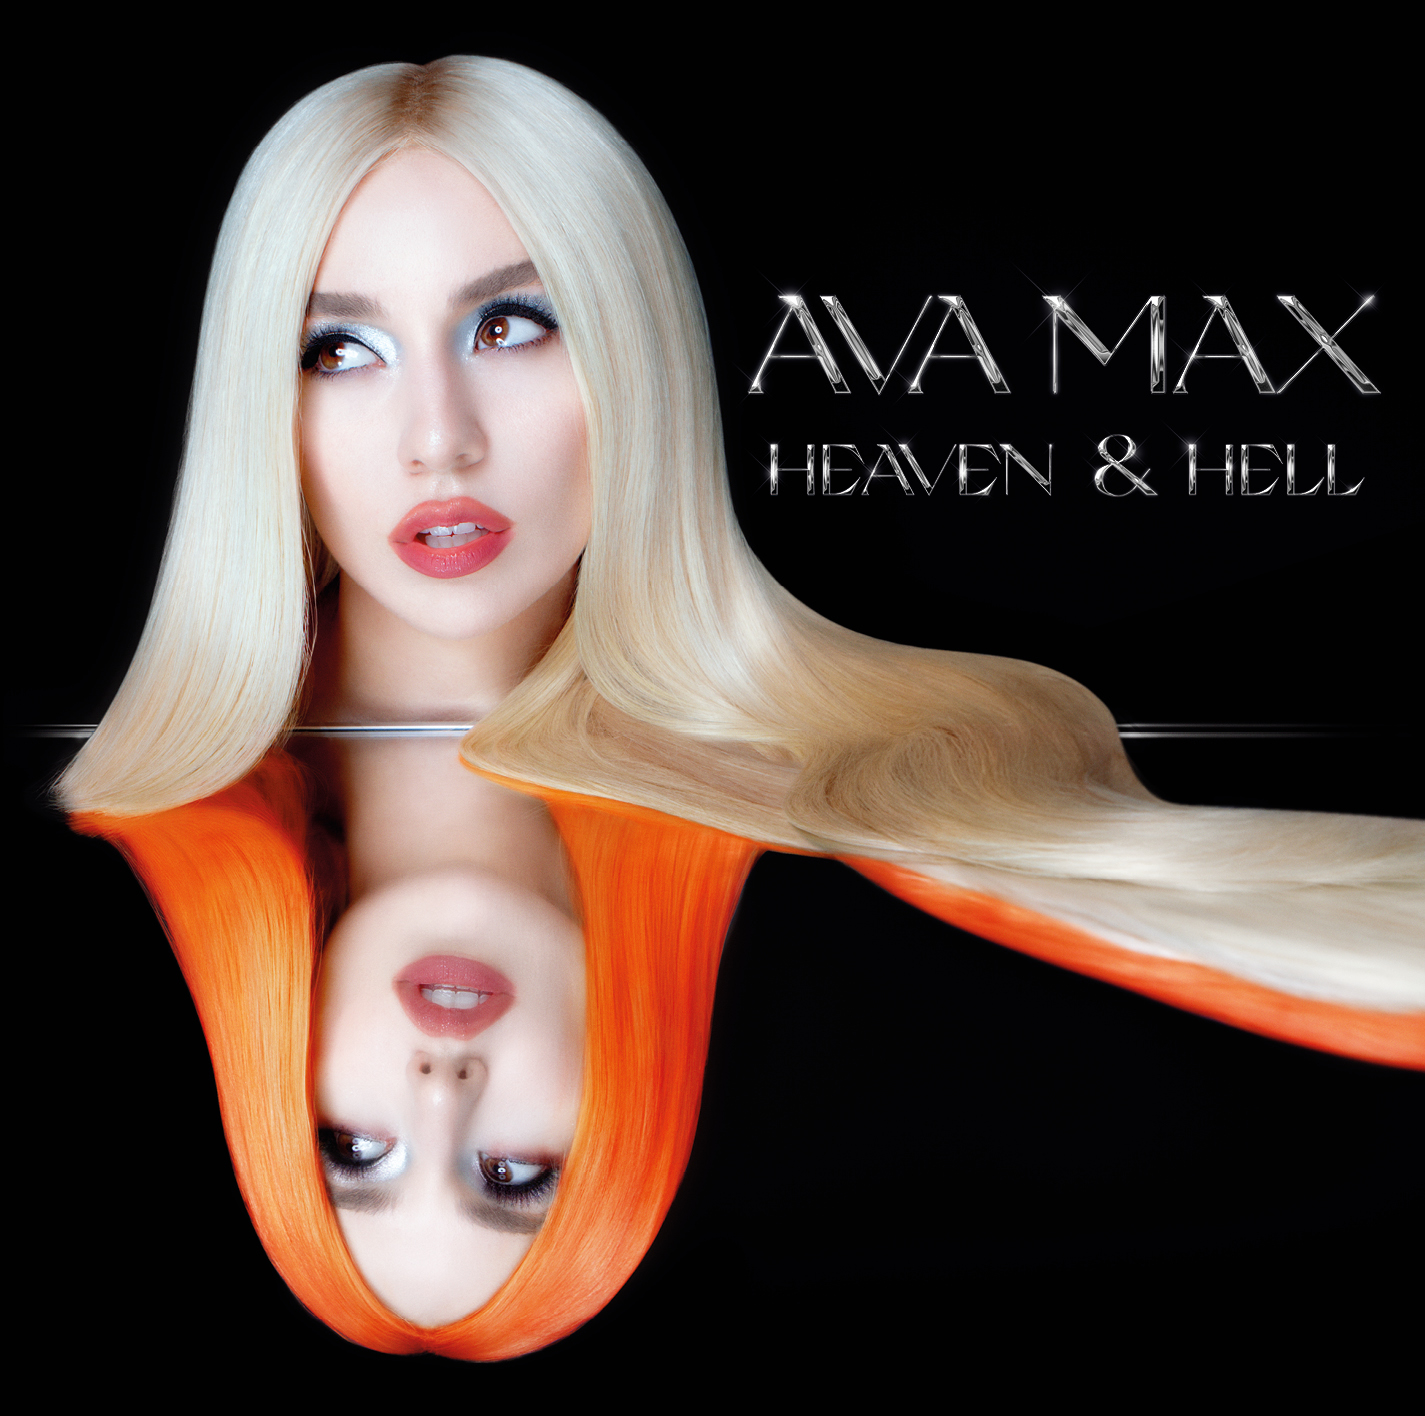 Ava Max releases debut album, Heaven & Hell